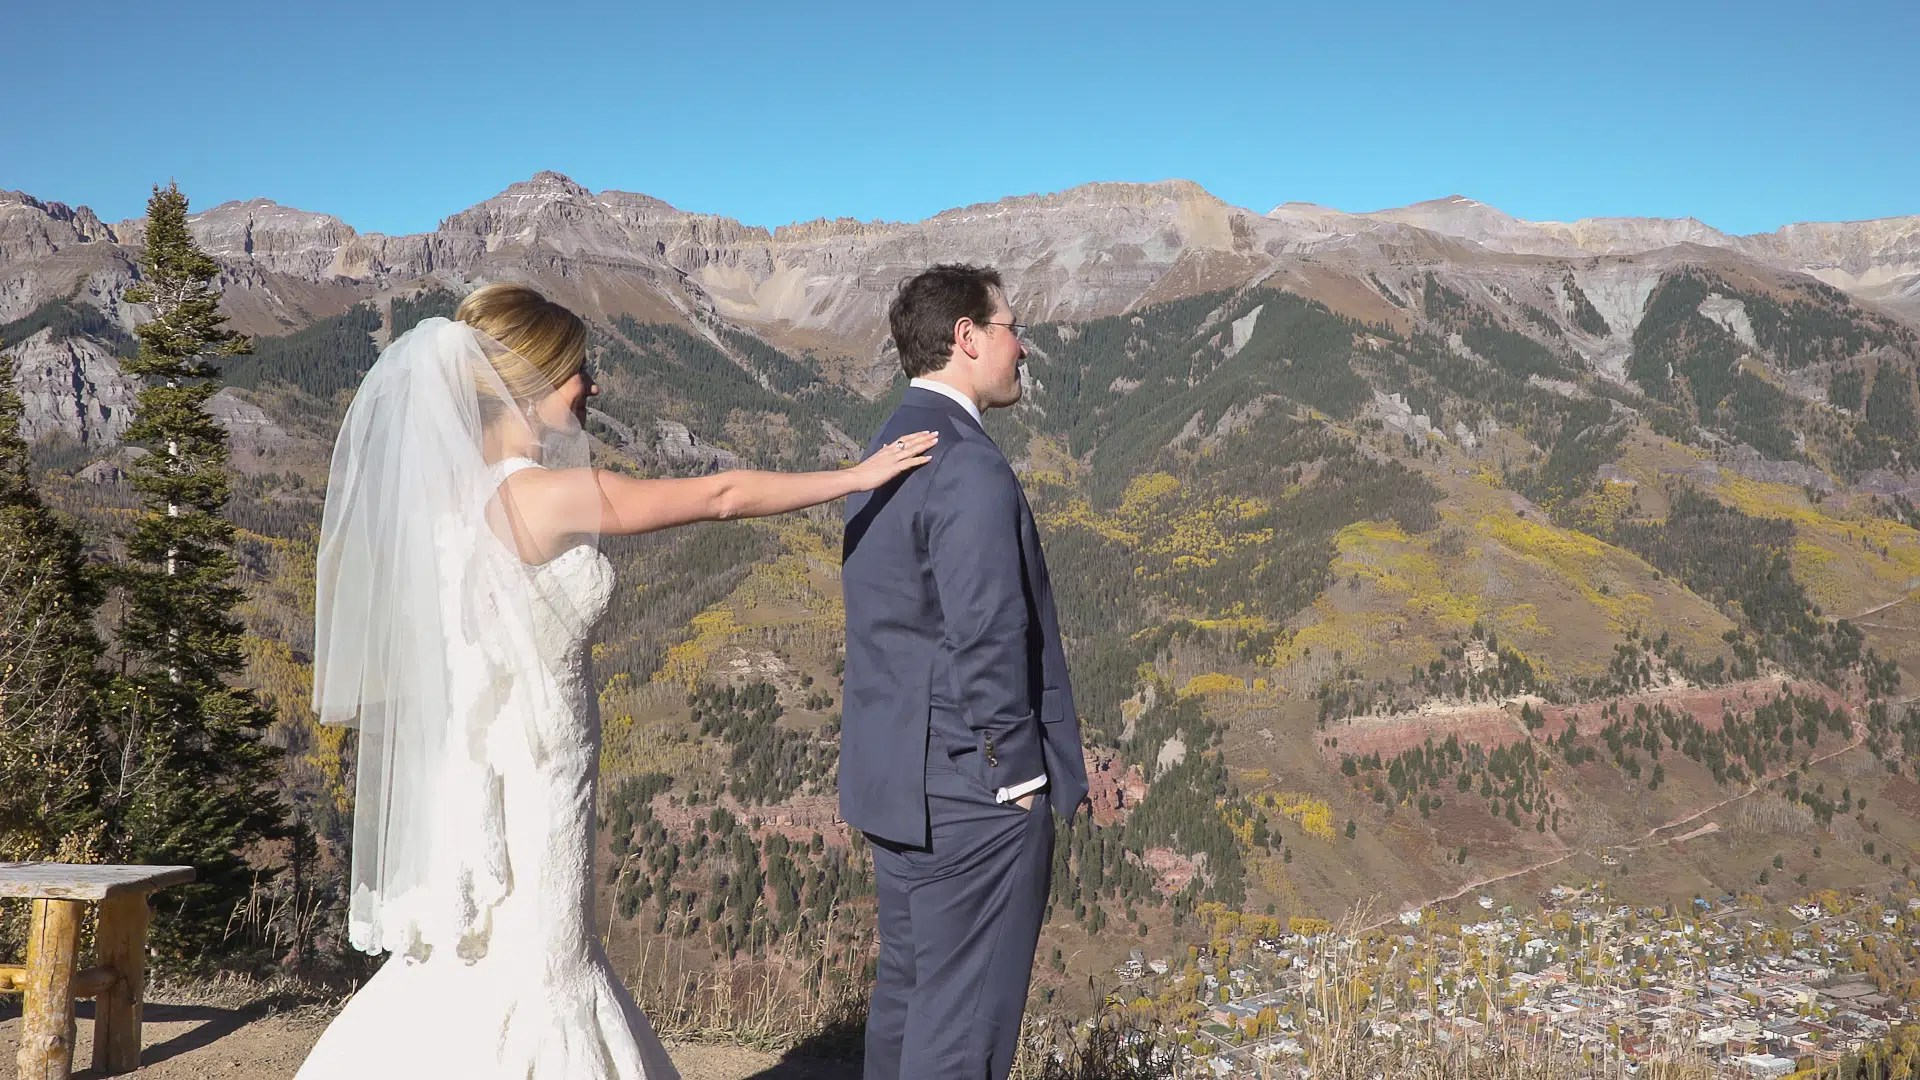 Jarod & Molly | Wedding Highlights Video | Telluride, CO